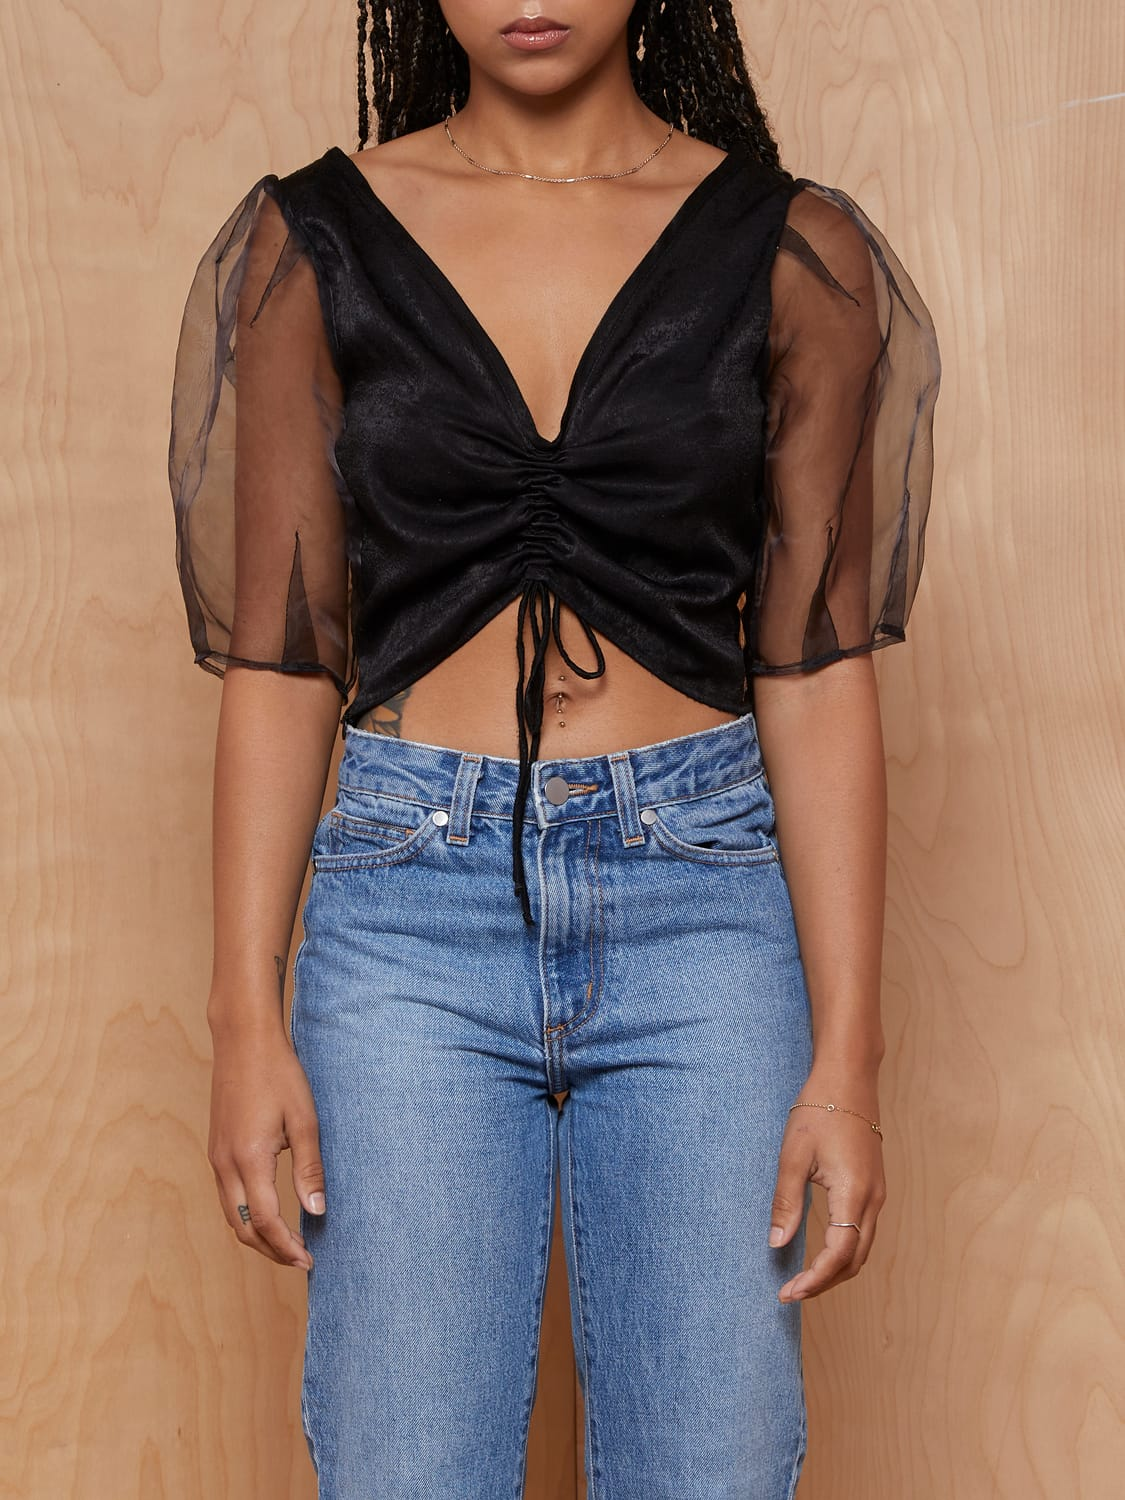 Tach Delmira Silk Crop Top